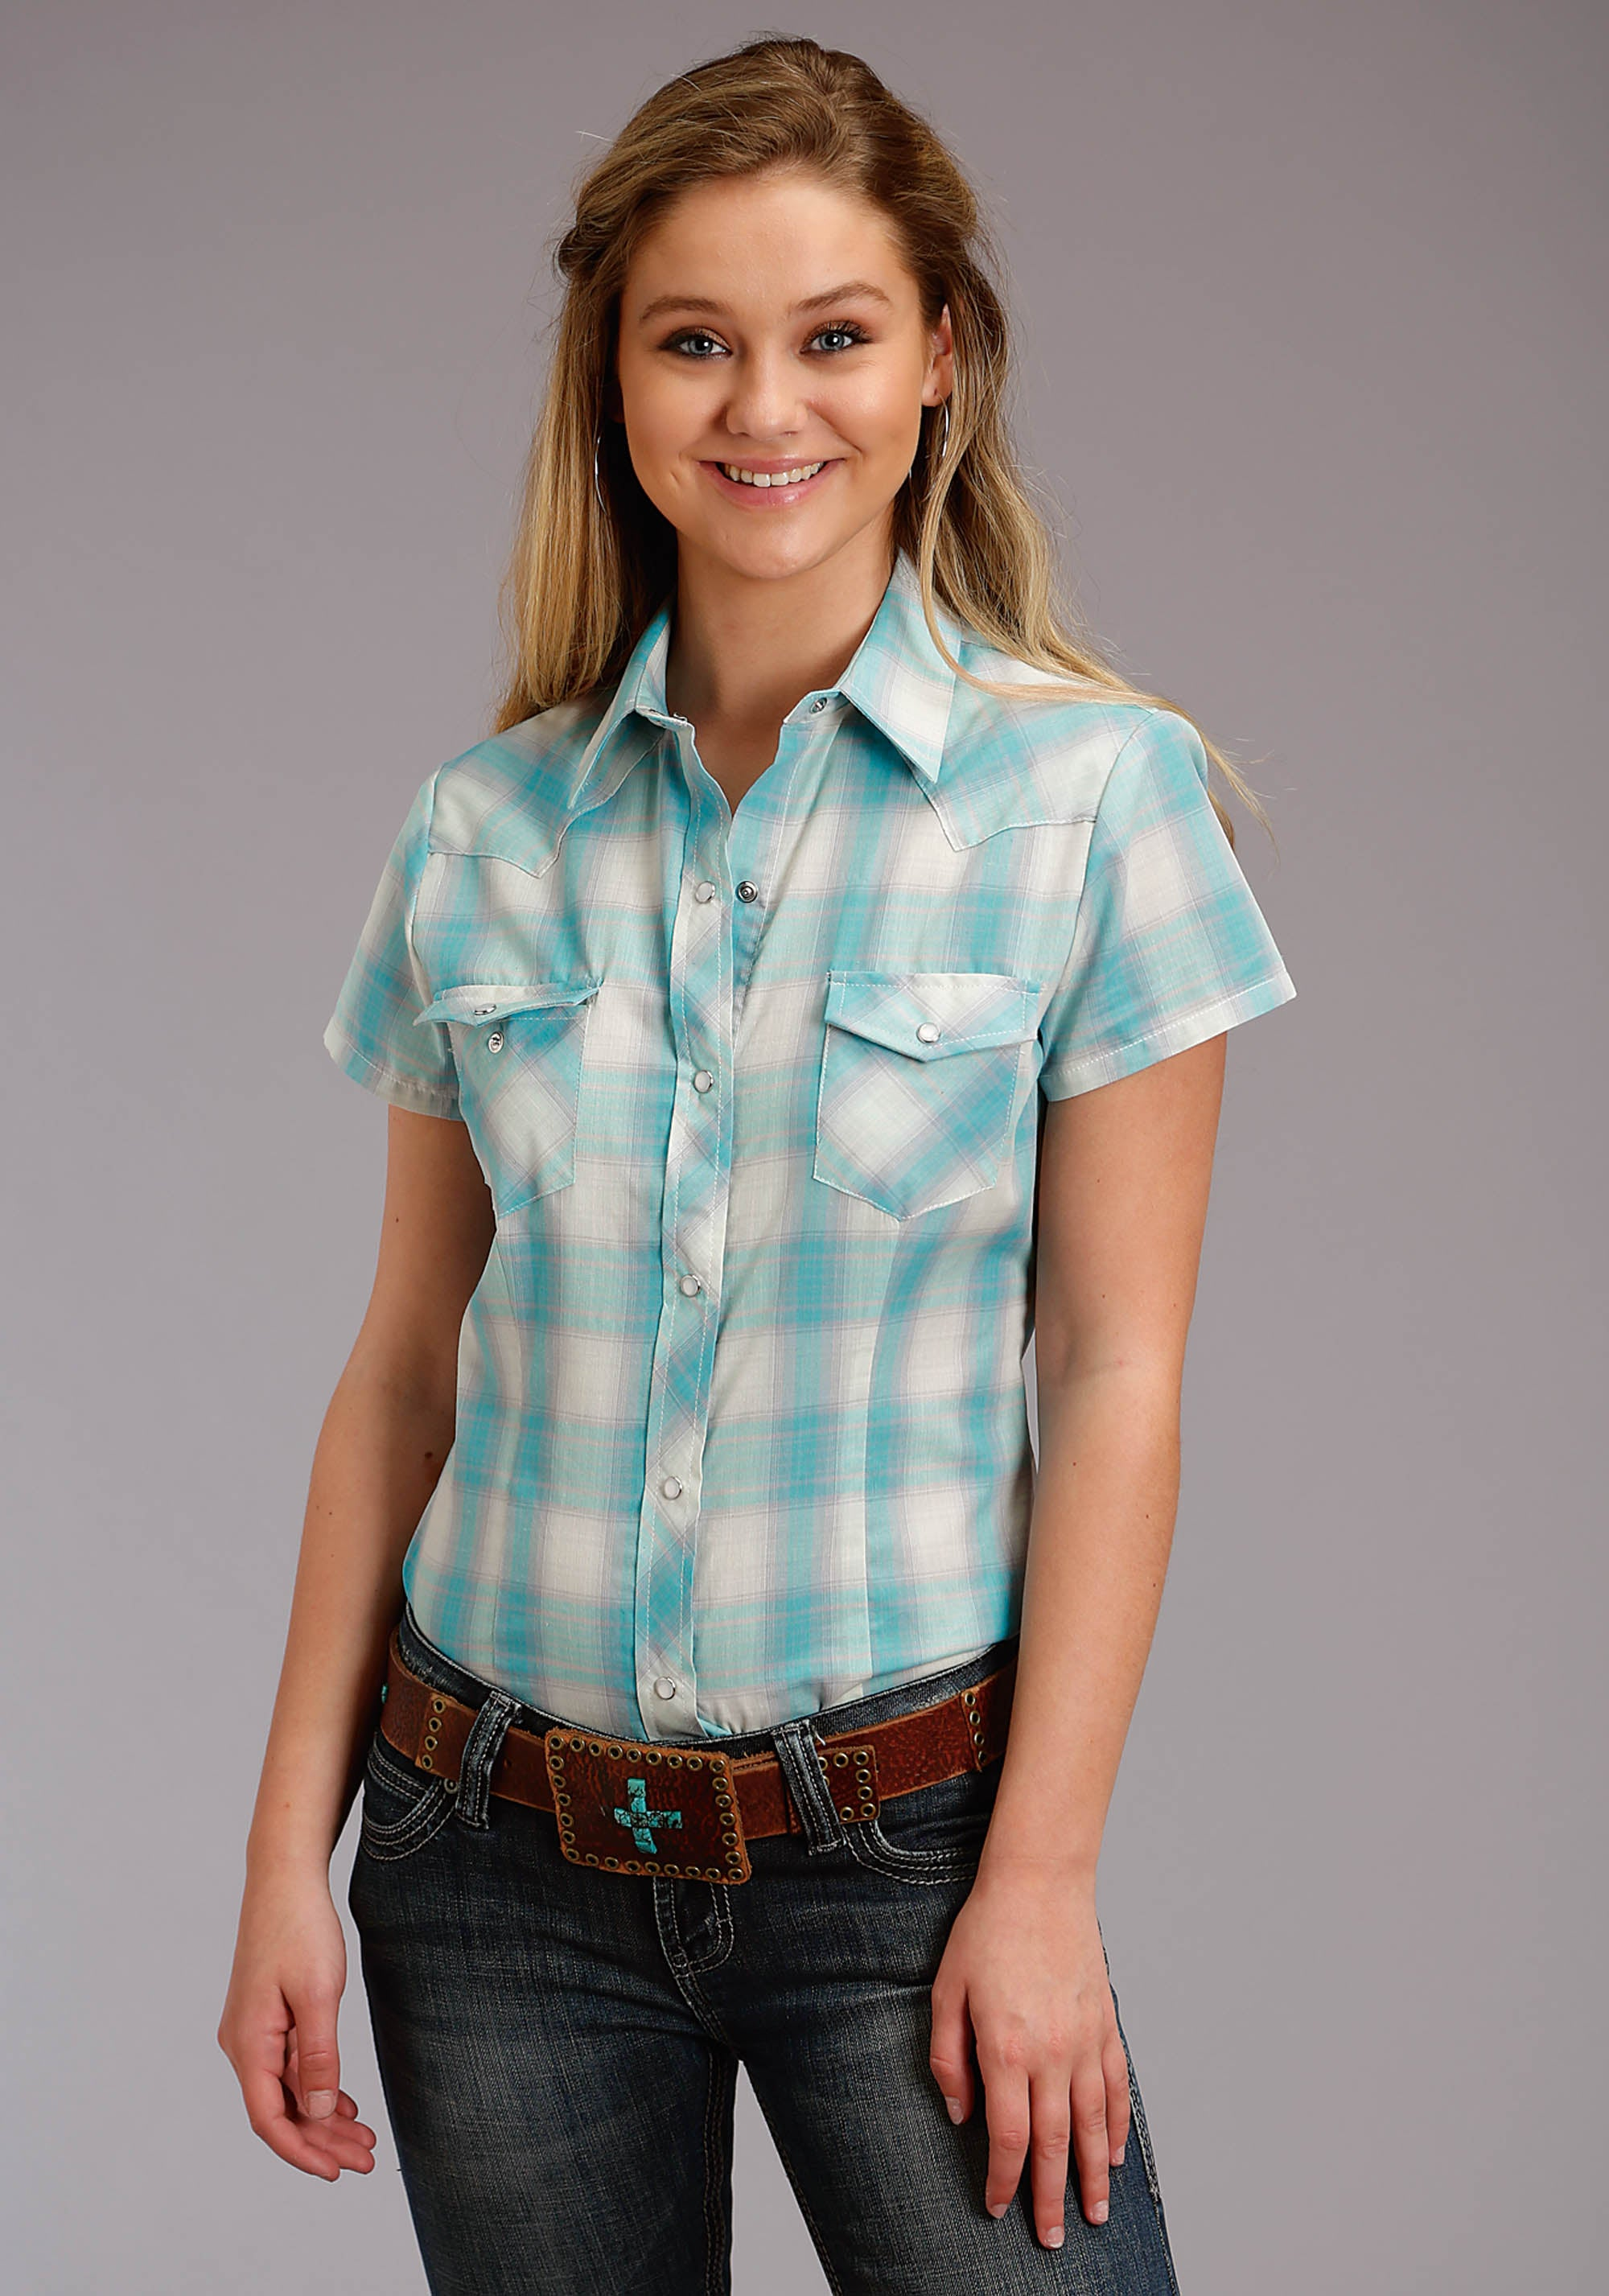 ROPER WOMENS BLUE 2817 TURQUOISE & CREAM PLAID KARMAN CLASSICS- 55/45 PLAID SHORT SLEEVE